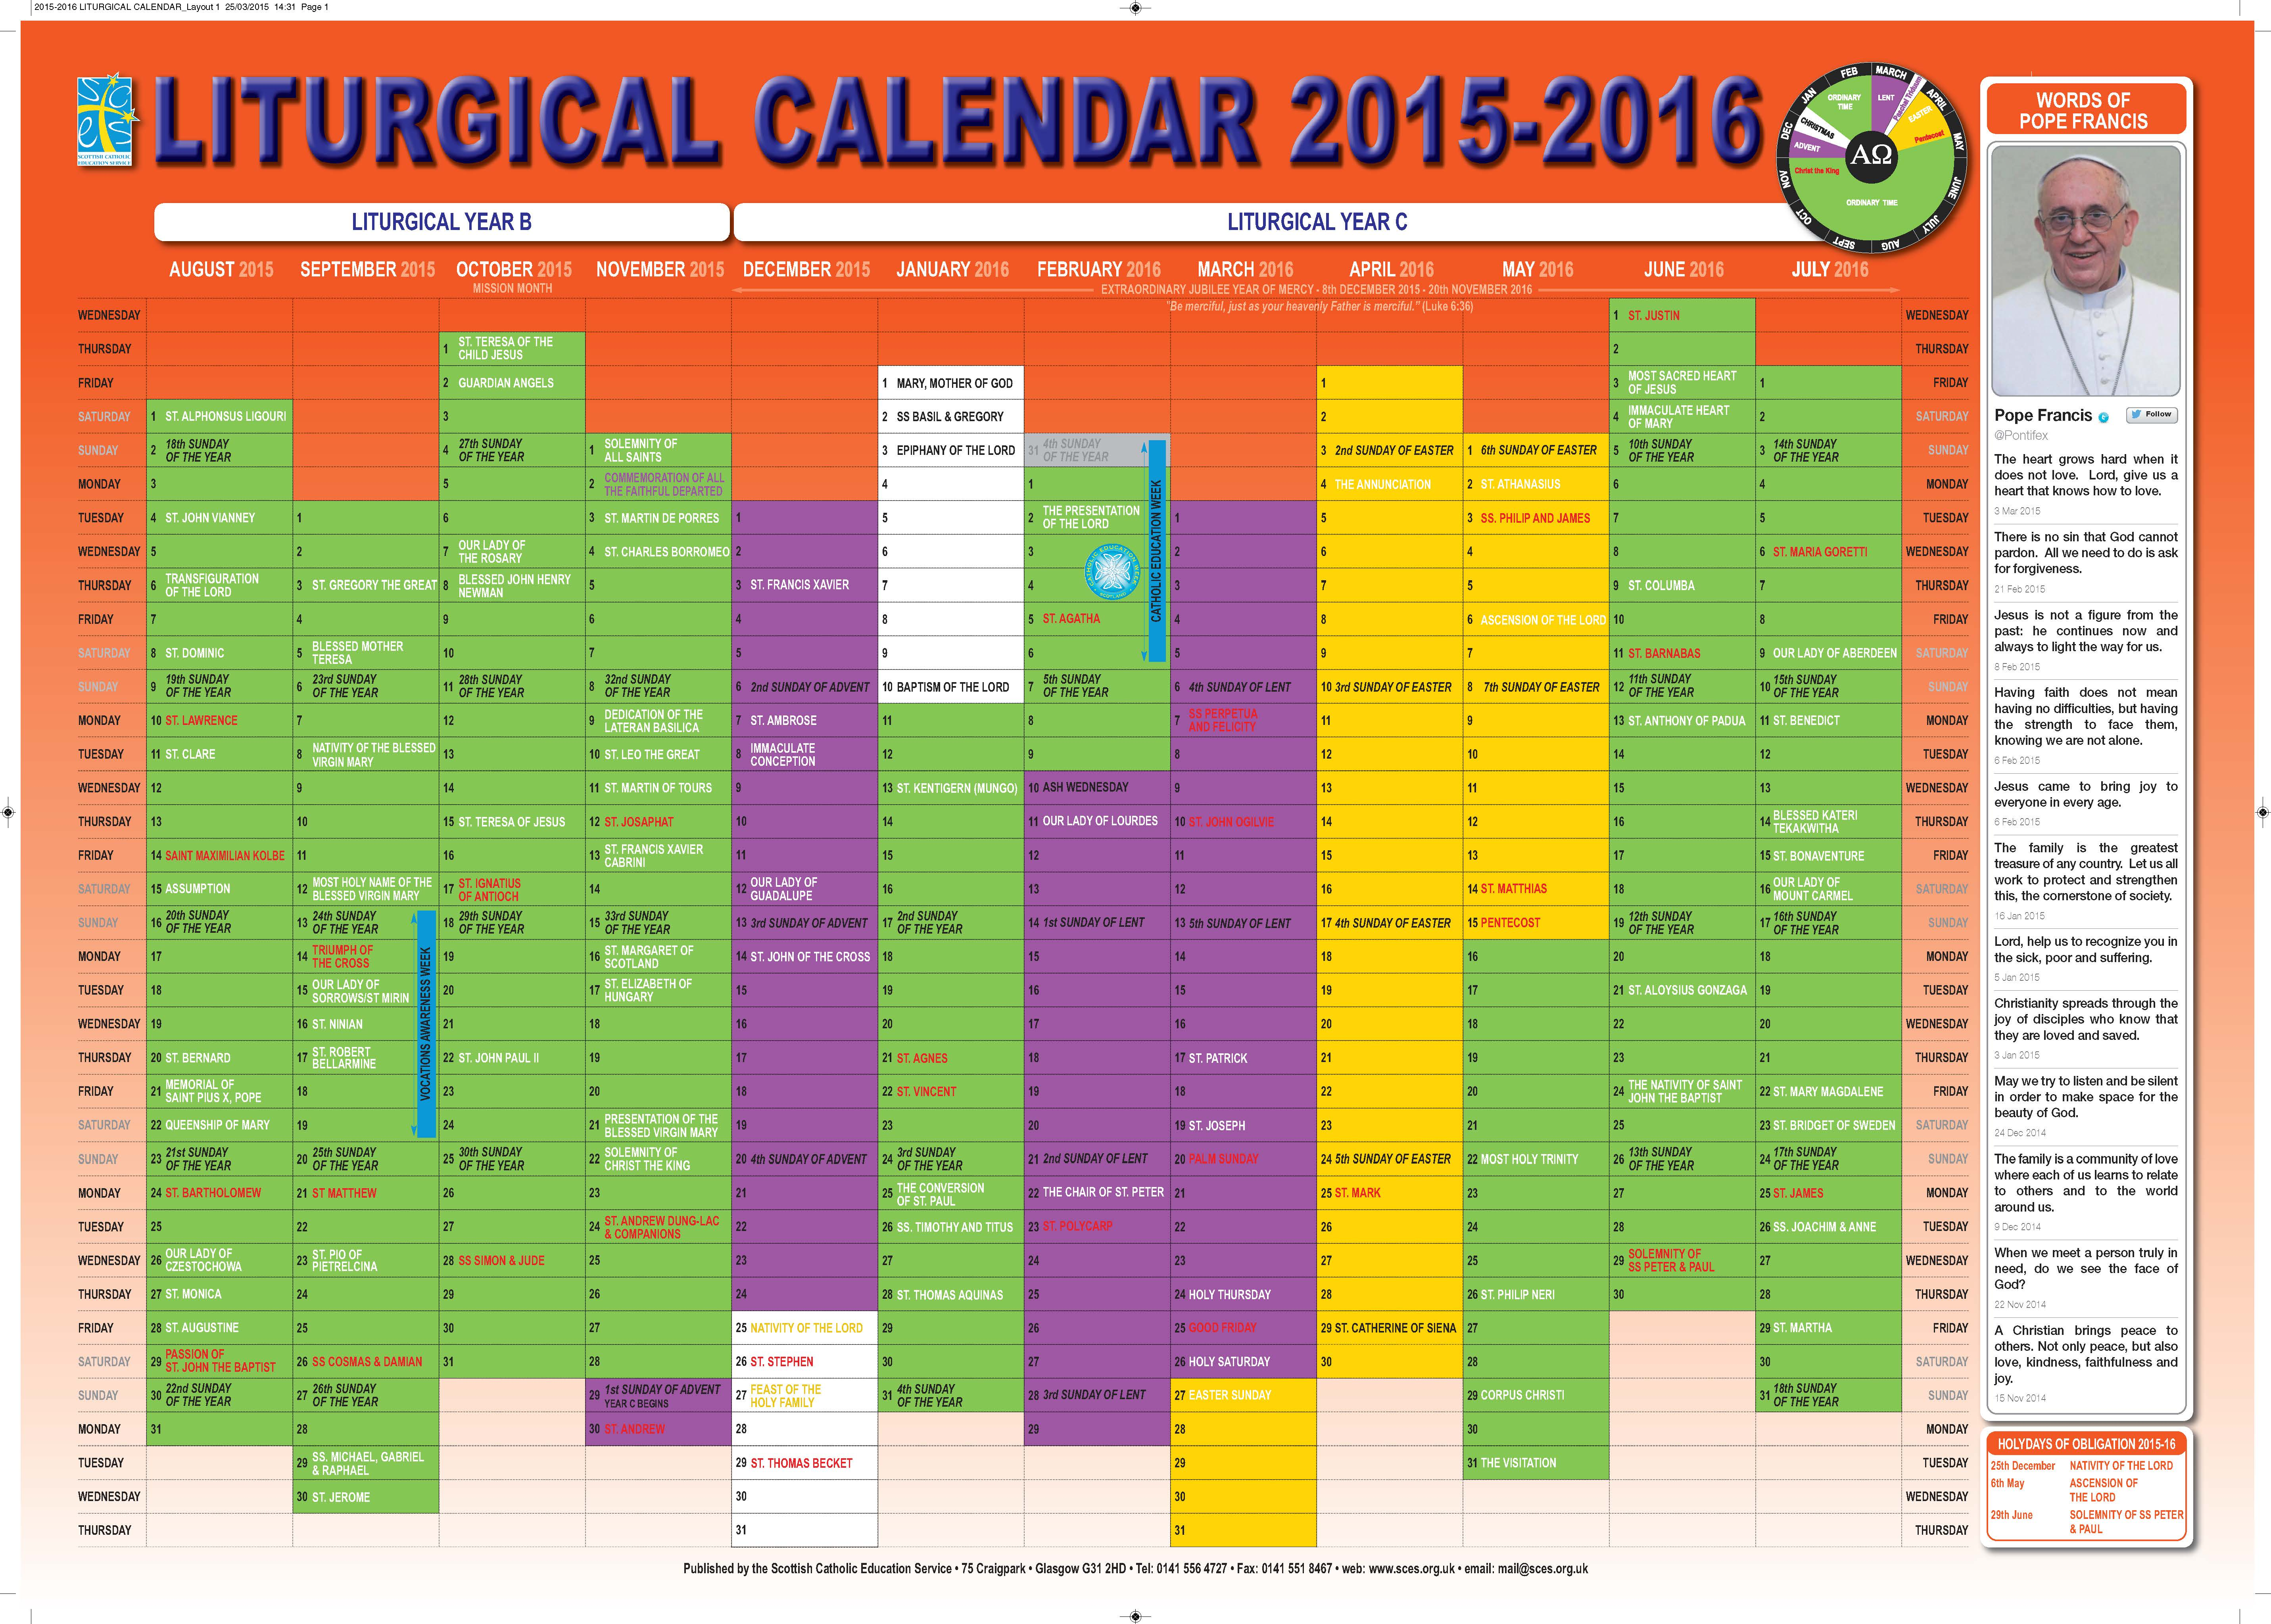 ... Catholic Education Service | SCES | Liturgical Calendar 2015-16